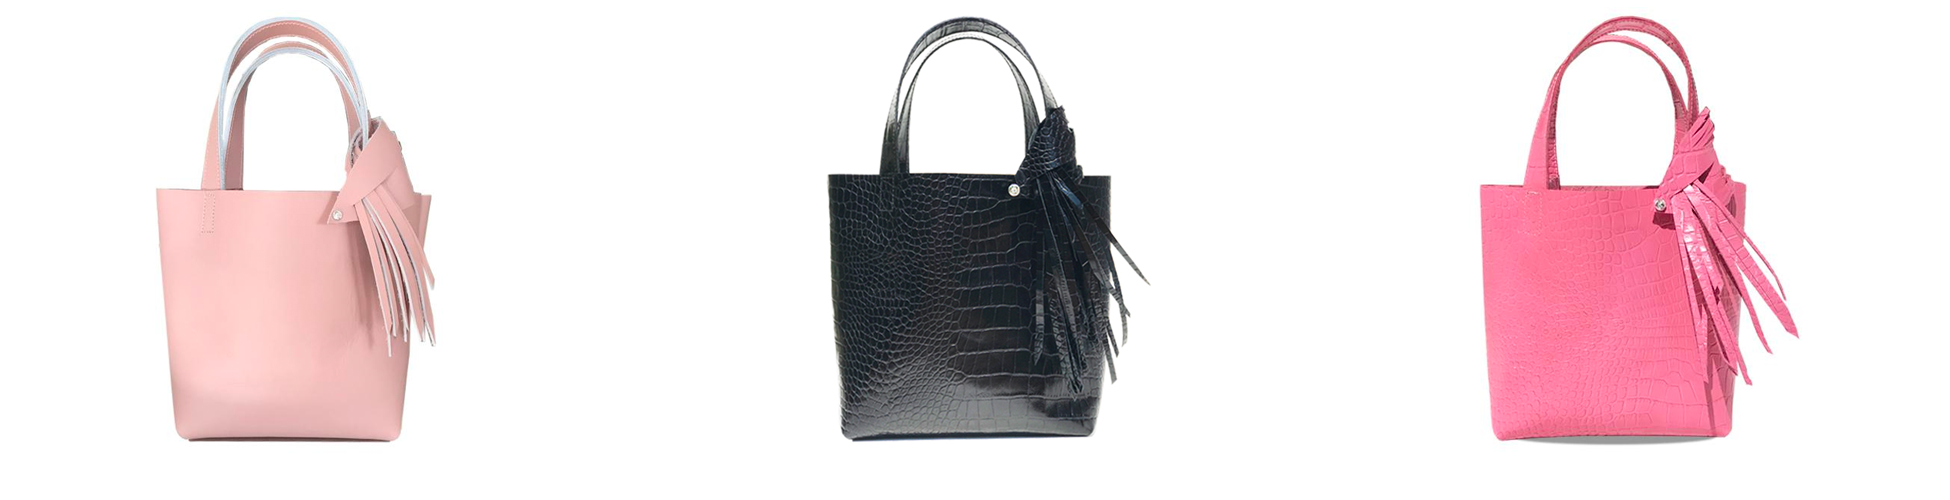 Contact MONOLISA - Handmade Premium Leather Handbags, Bag Accessories & Jewelry For Women